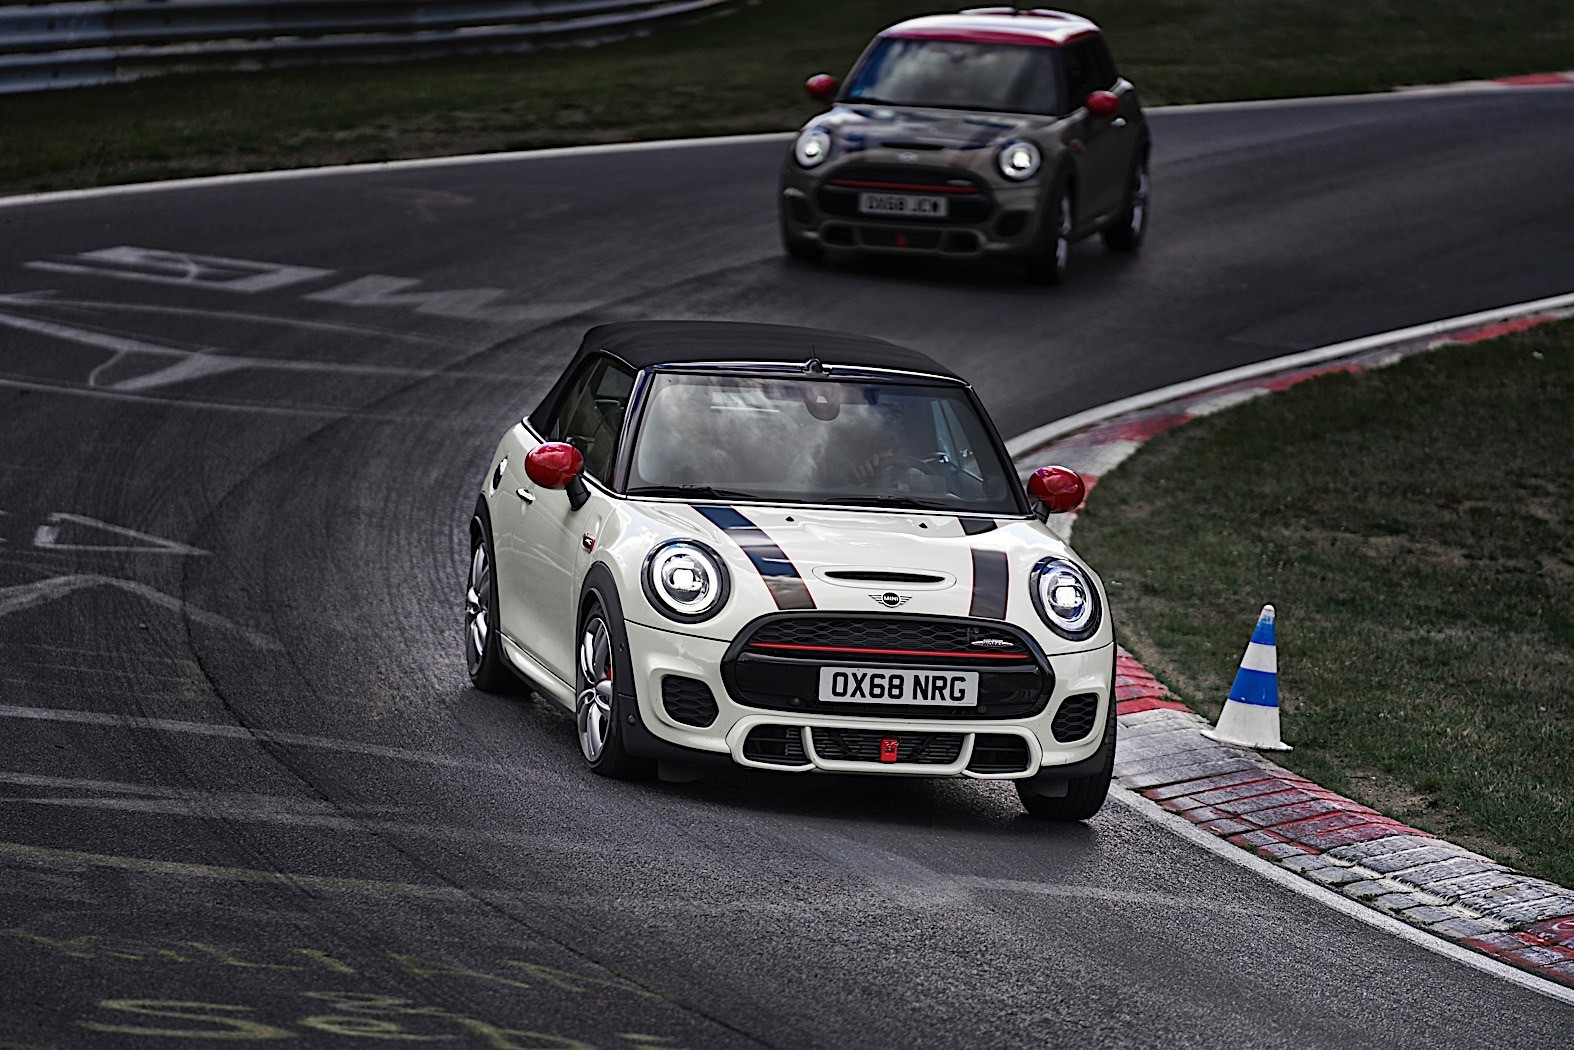 Mini John Cooper Works Comes Back As Euro 6d Temp Compliant Car From